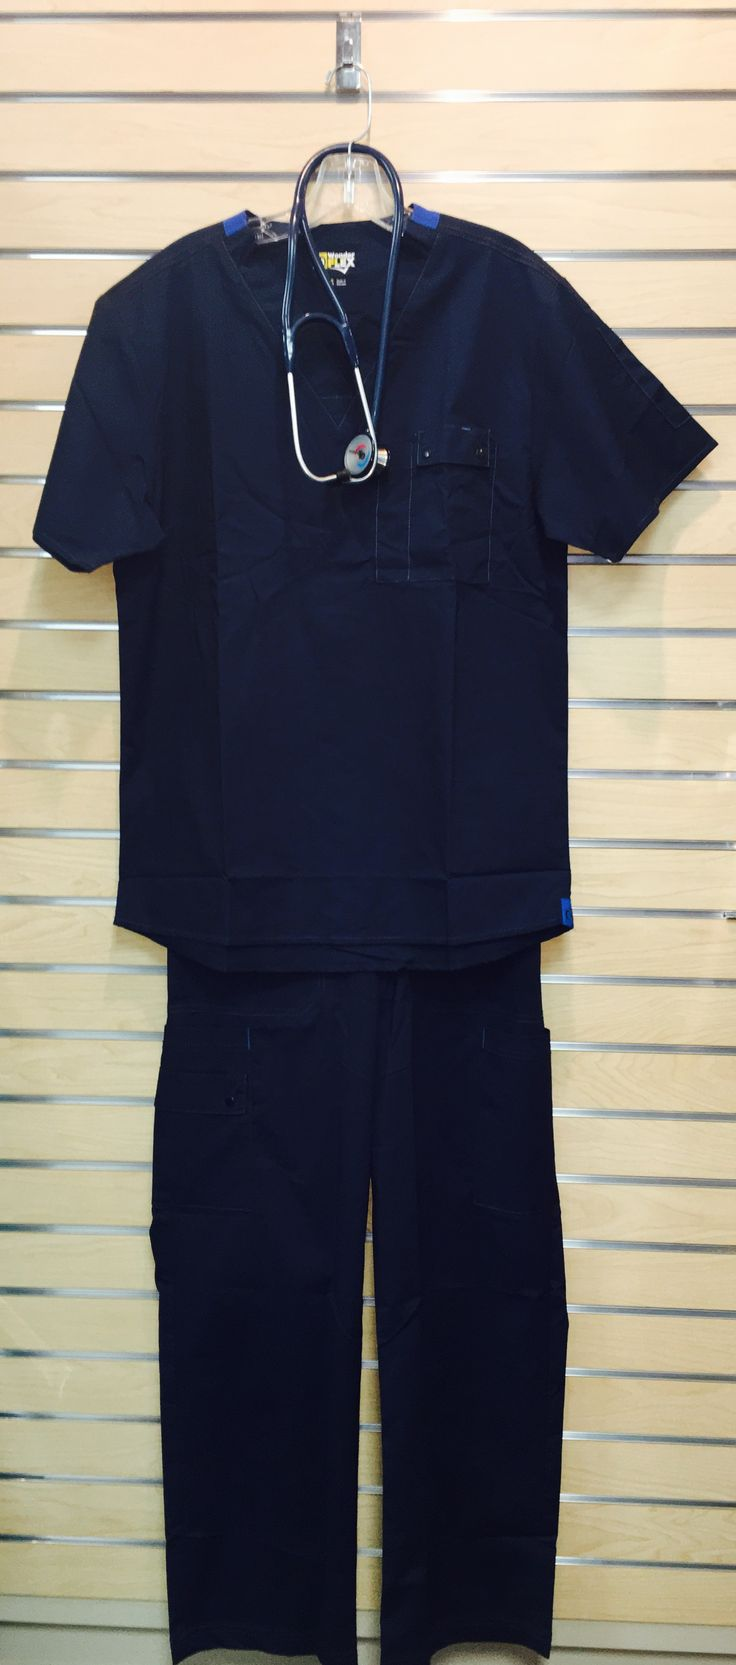 Men's Wink scrubs at The Uniform Outlet!